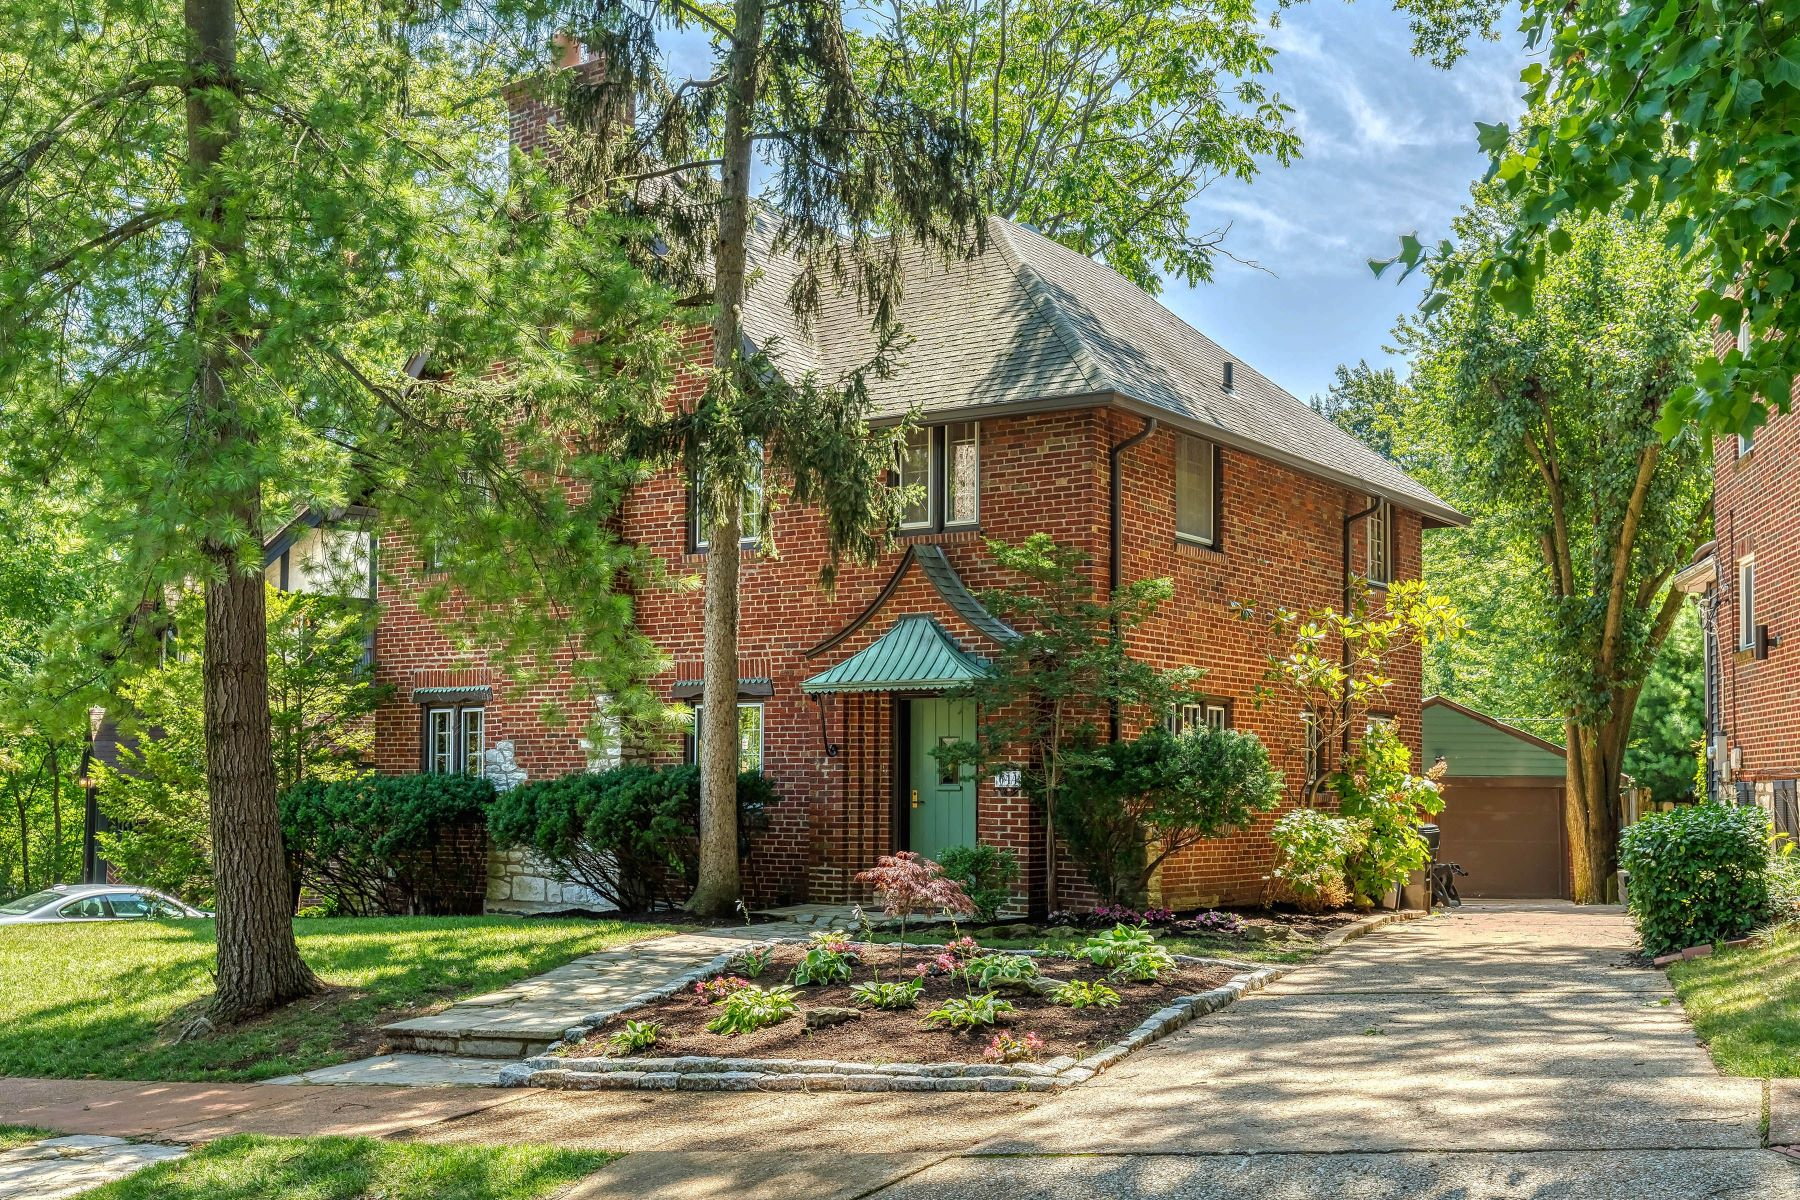 Property for Sale at Charming English Country Home 644 Vassar Avenue University City, Missouri 63130 United States